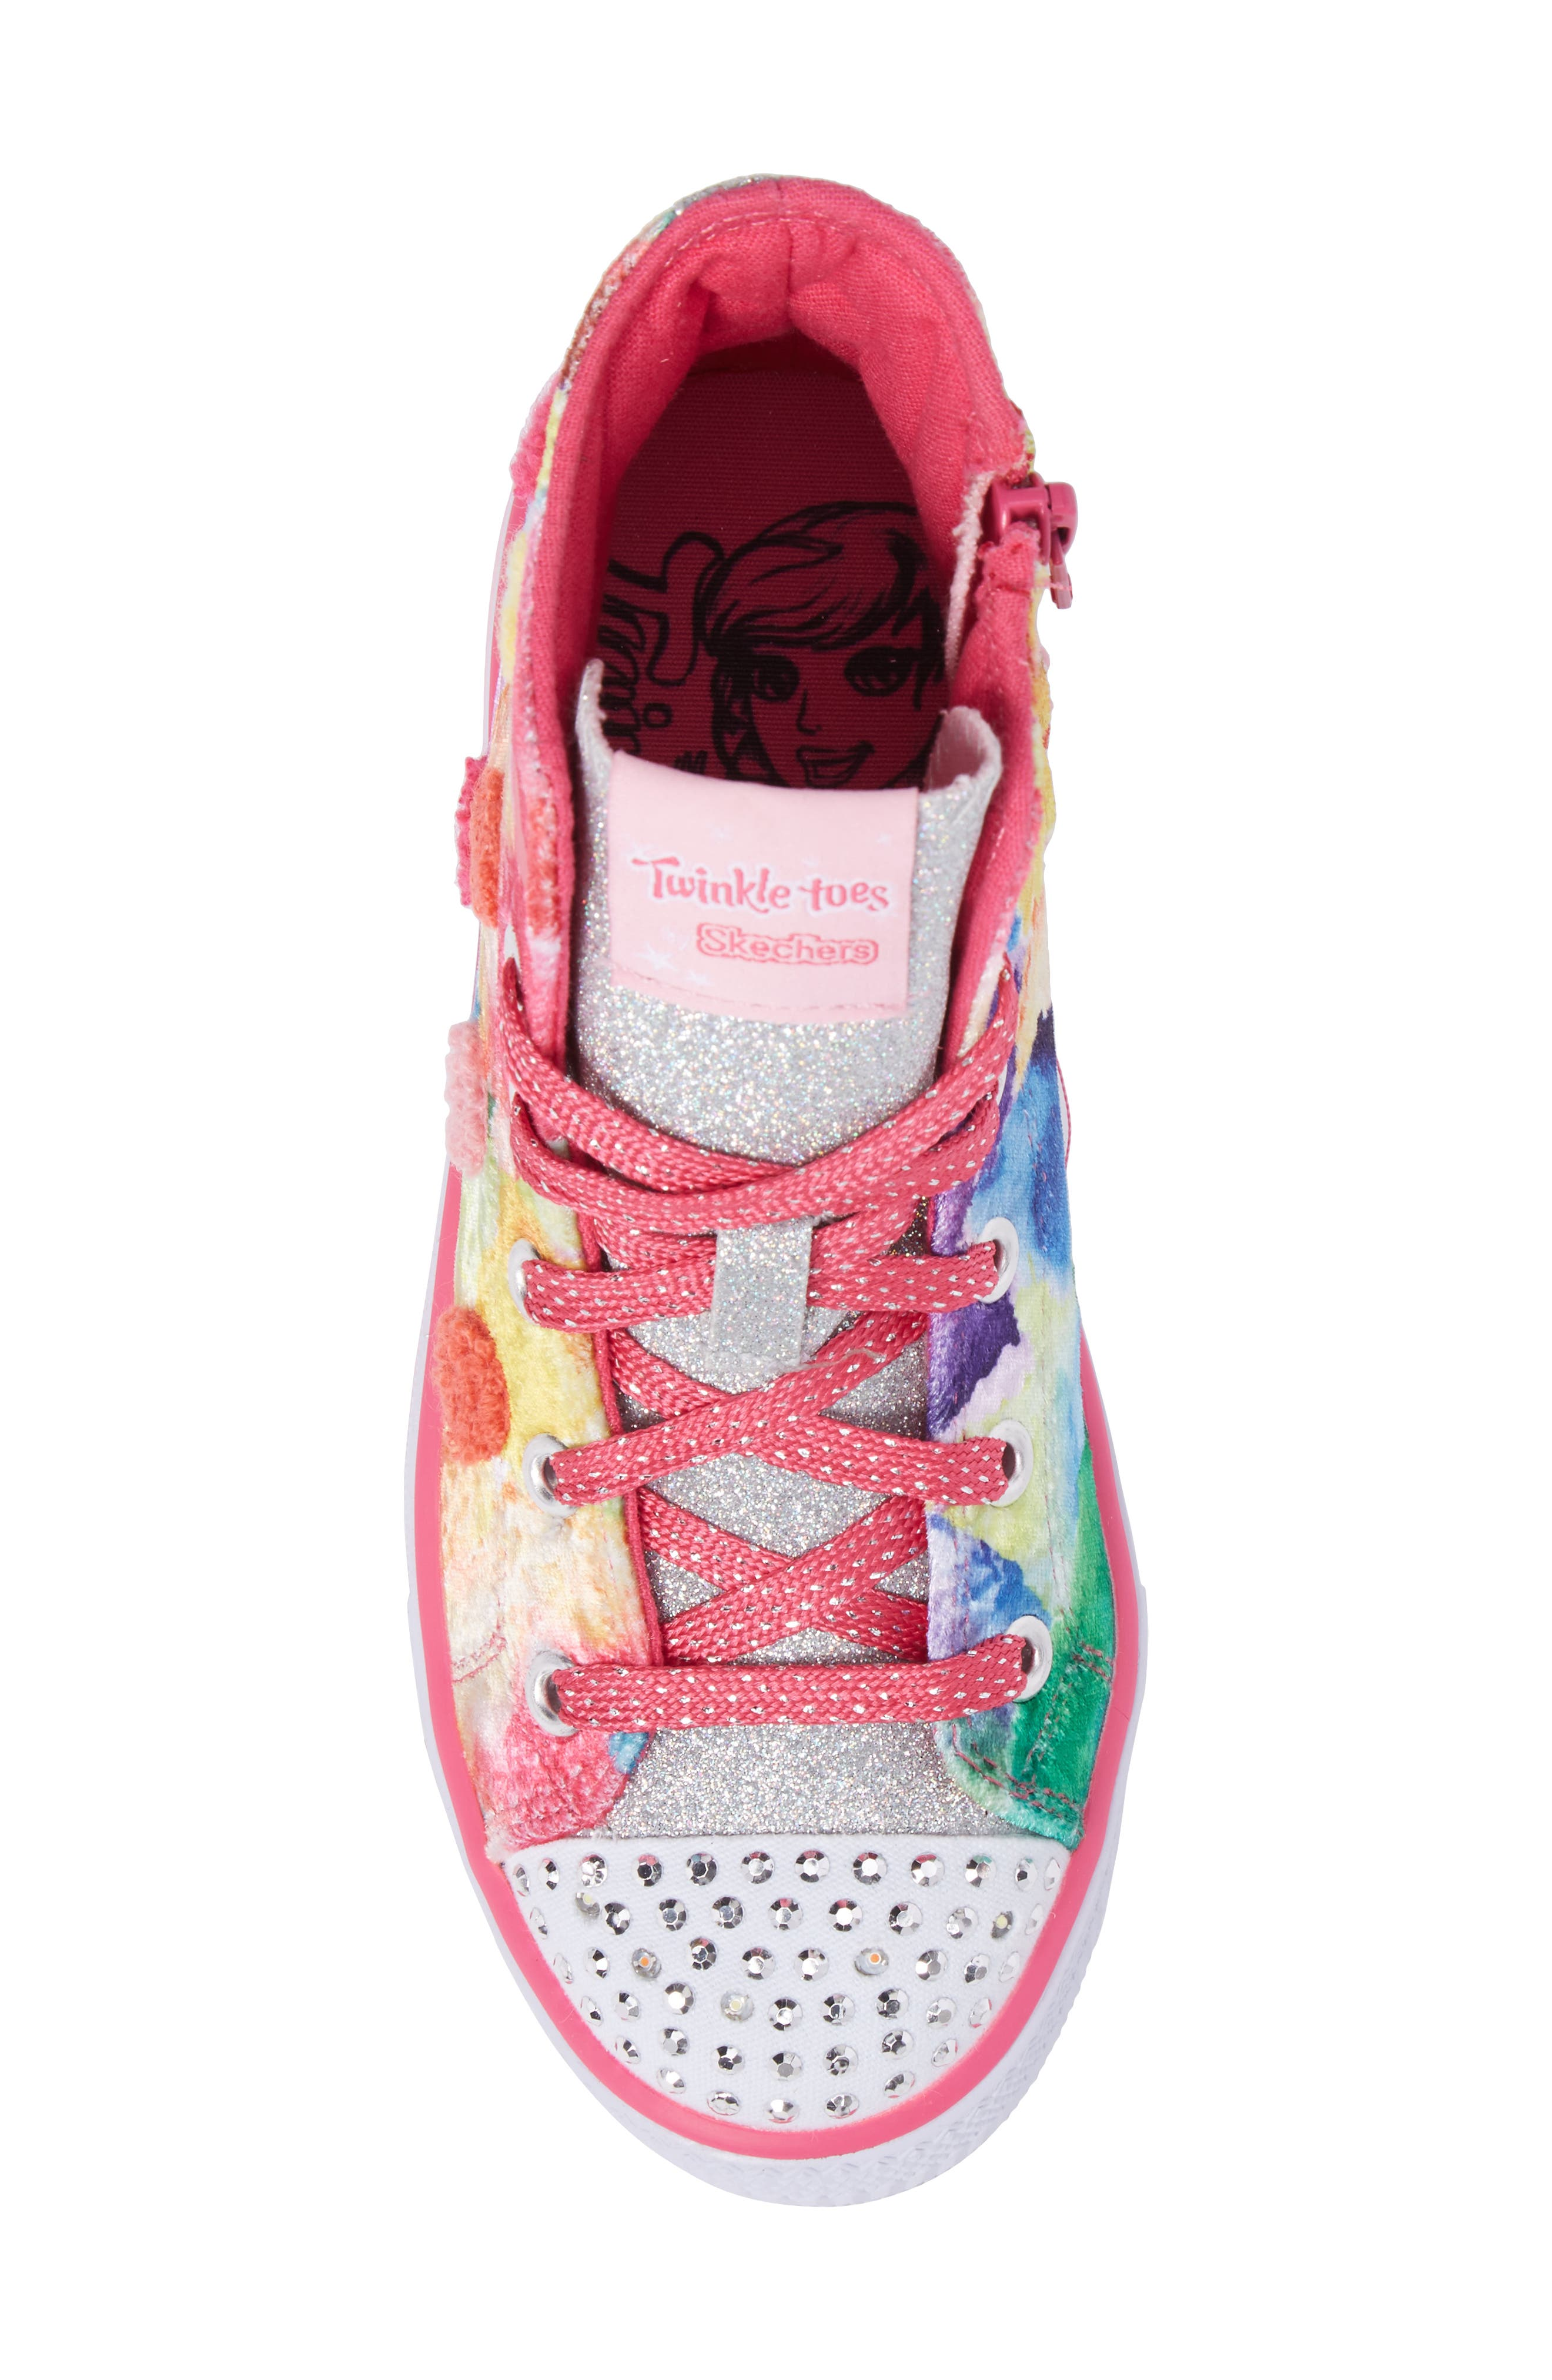 Twinkle Toes Shuffles Light-Up High Top Sneaker,                             Alternate thumbnail 5, color,                             Hot Pink/ Multi